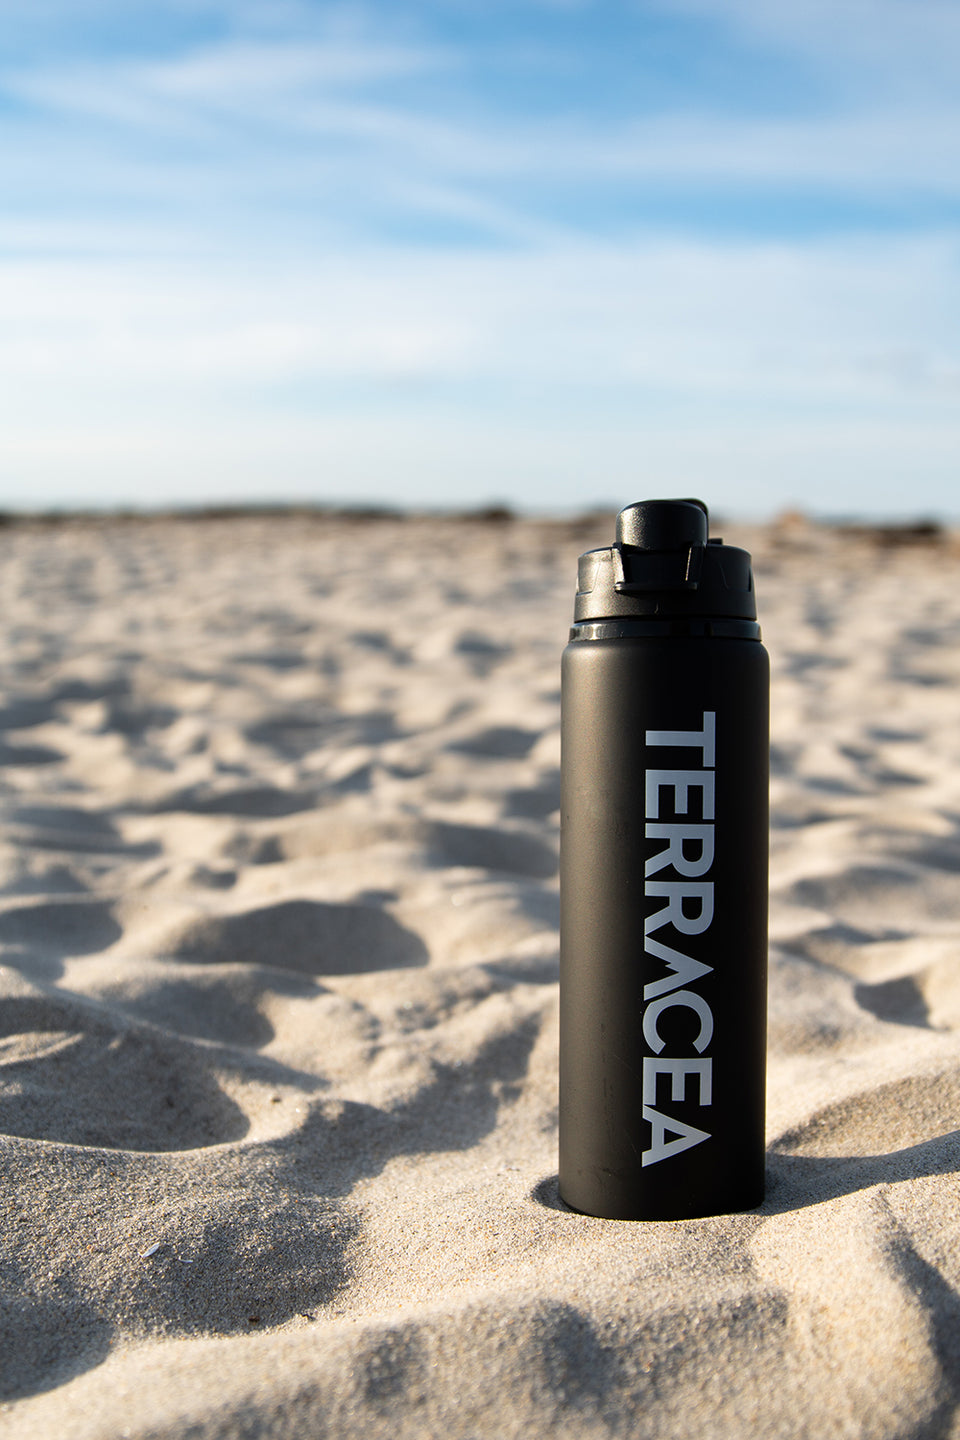 CLASSIC TERRACEA WATER BOTTLE by Terracea - Waterproof, Windproof, Weatherproof Technical Outerwear